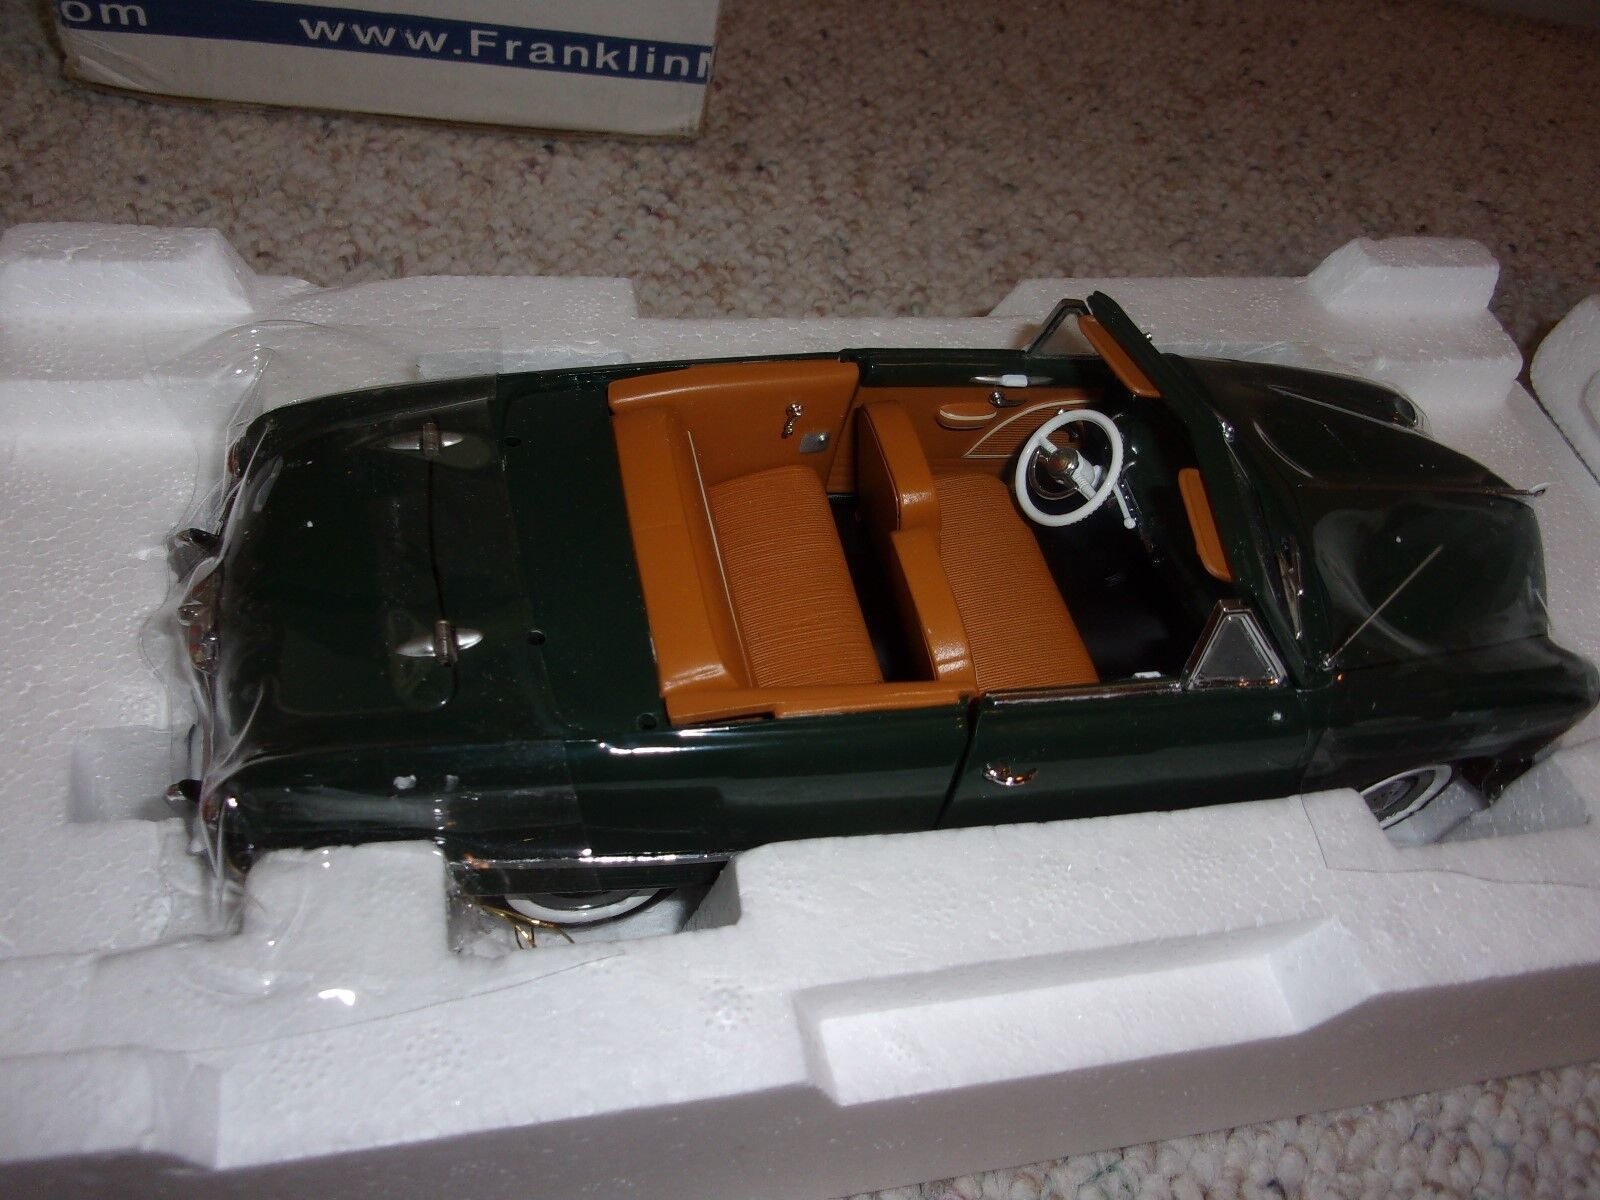 1949 FORD CONVERTIBLE-Franklin Comme neuf-Neuf